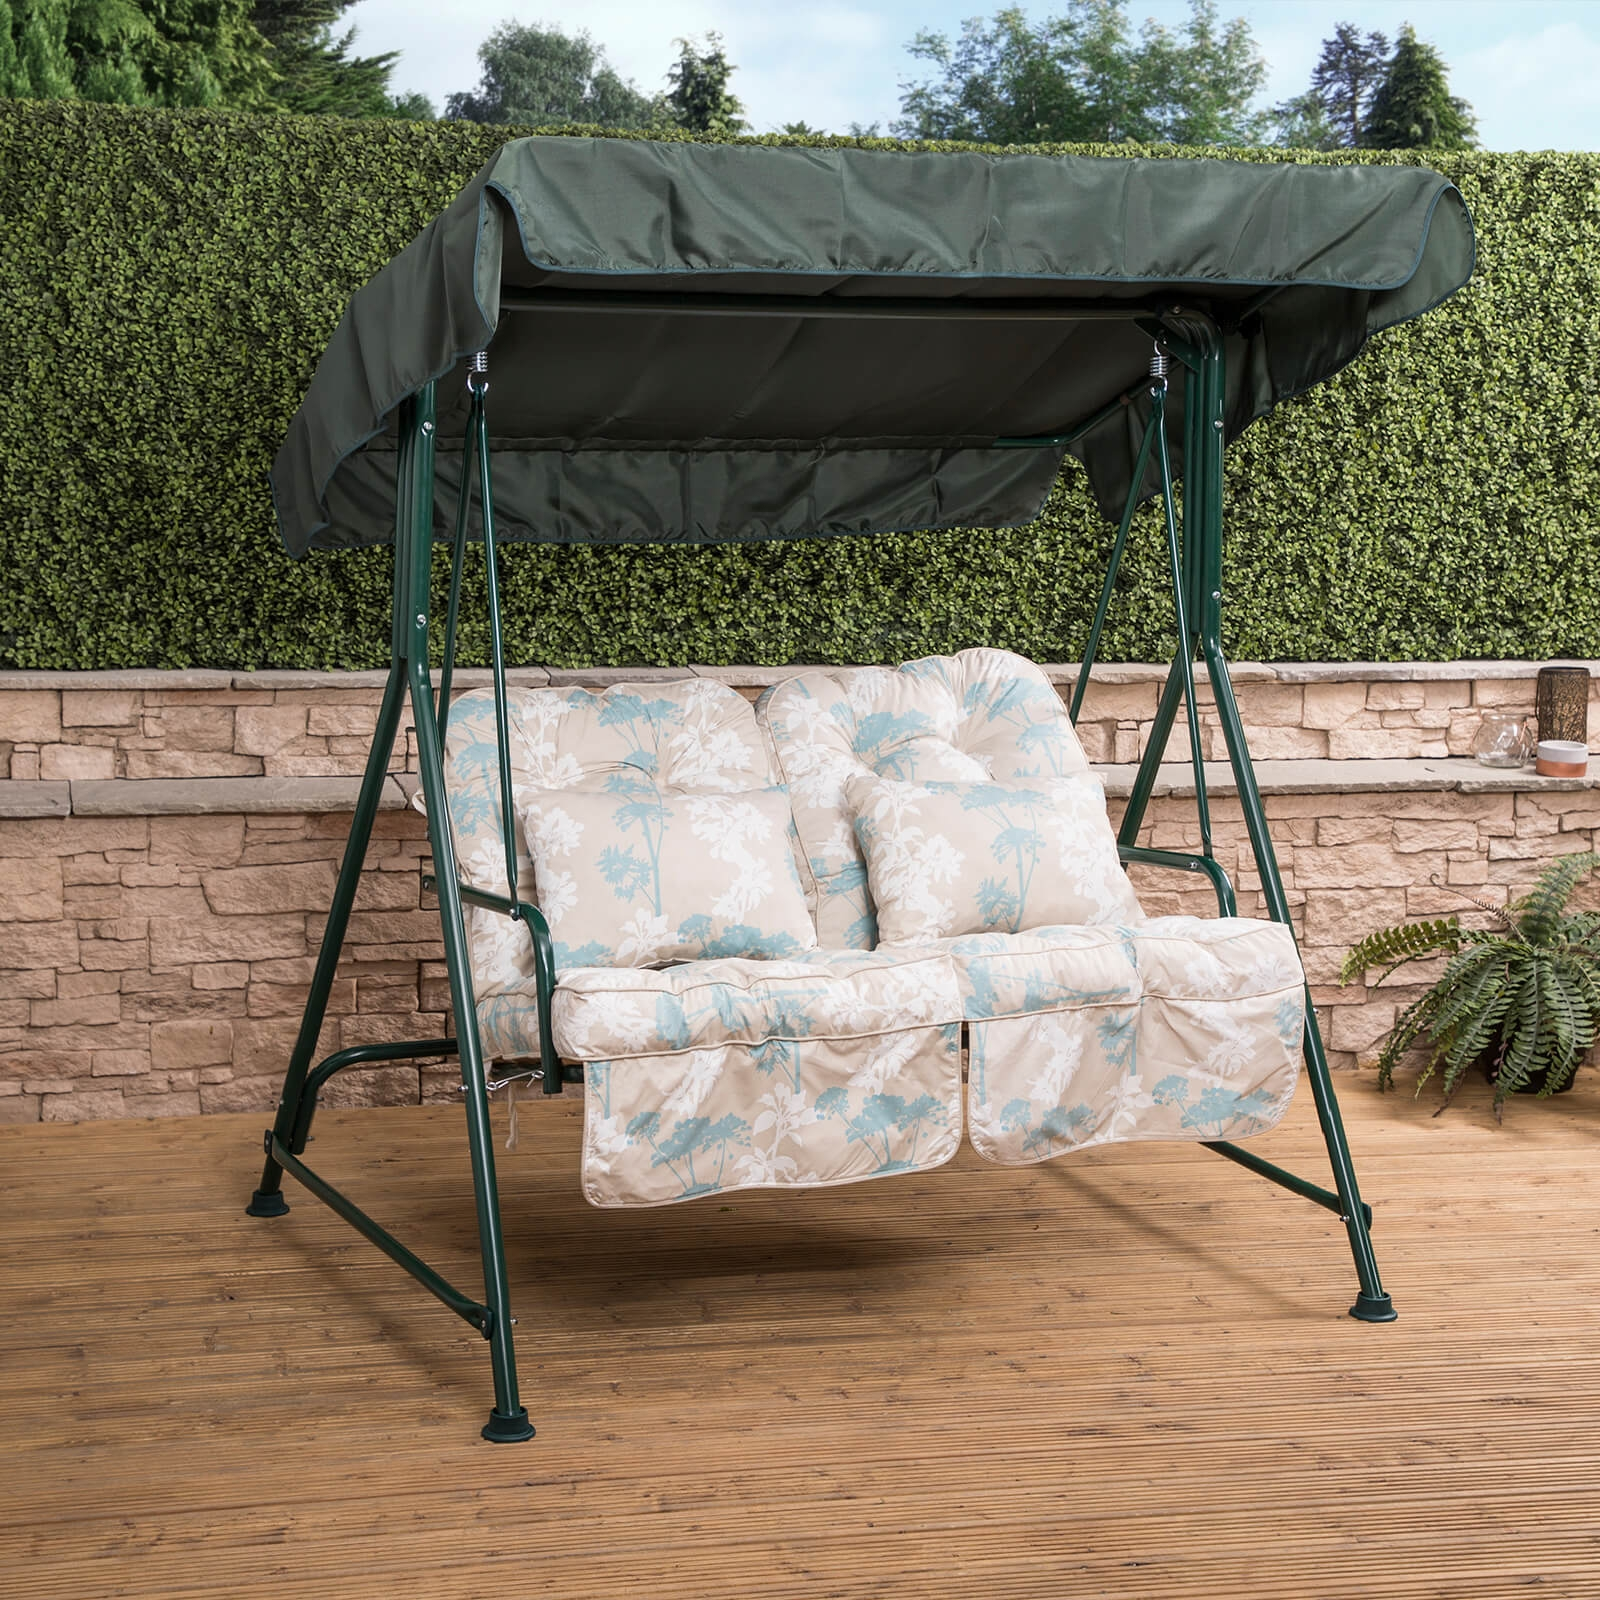 Mosca 2 Seater Garden Patio Swing Seat Green Frame with Classic